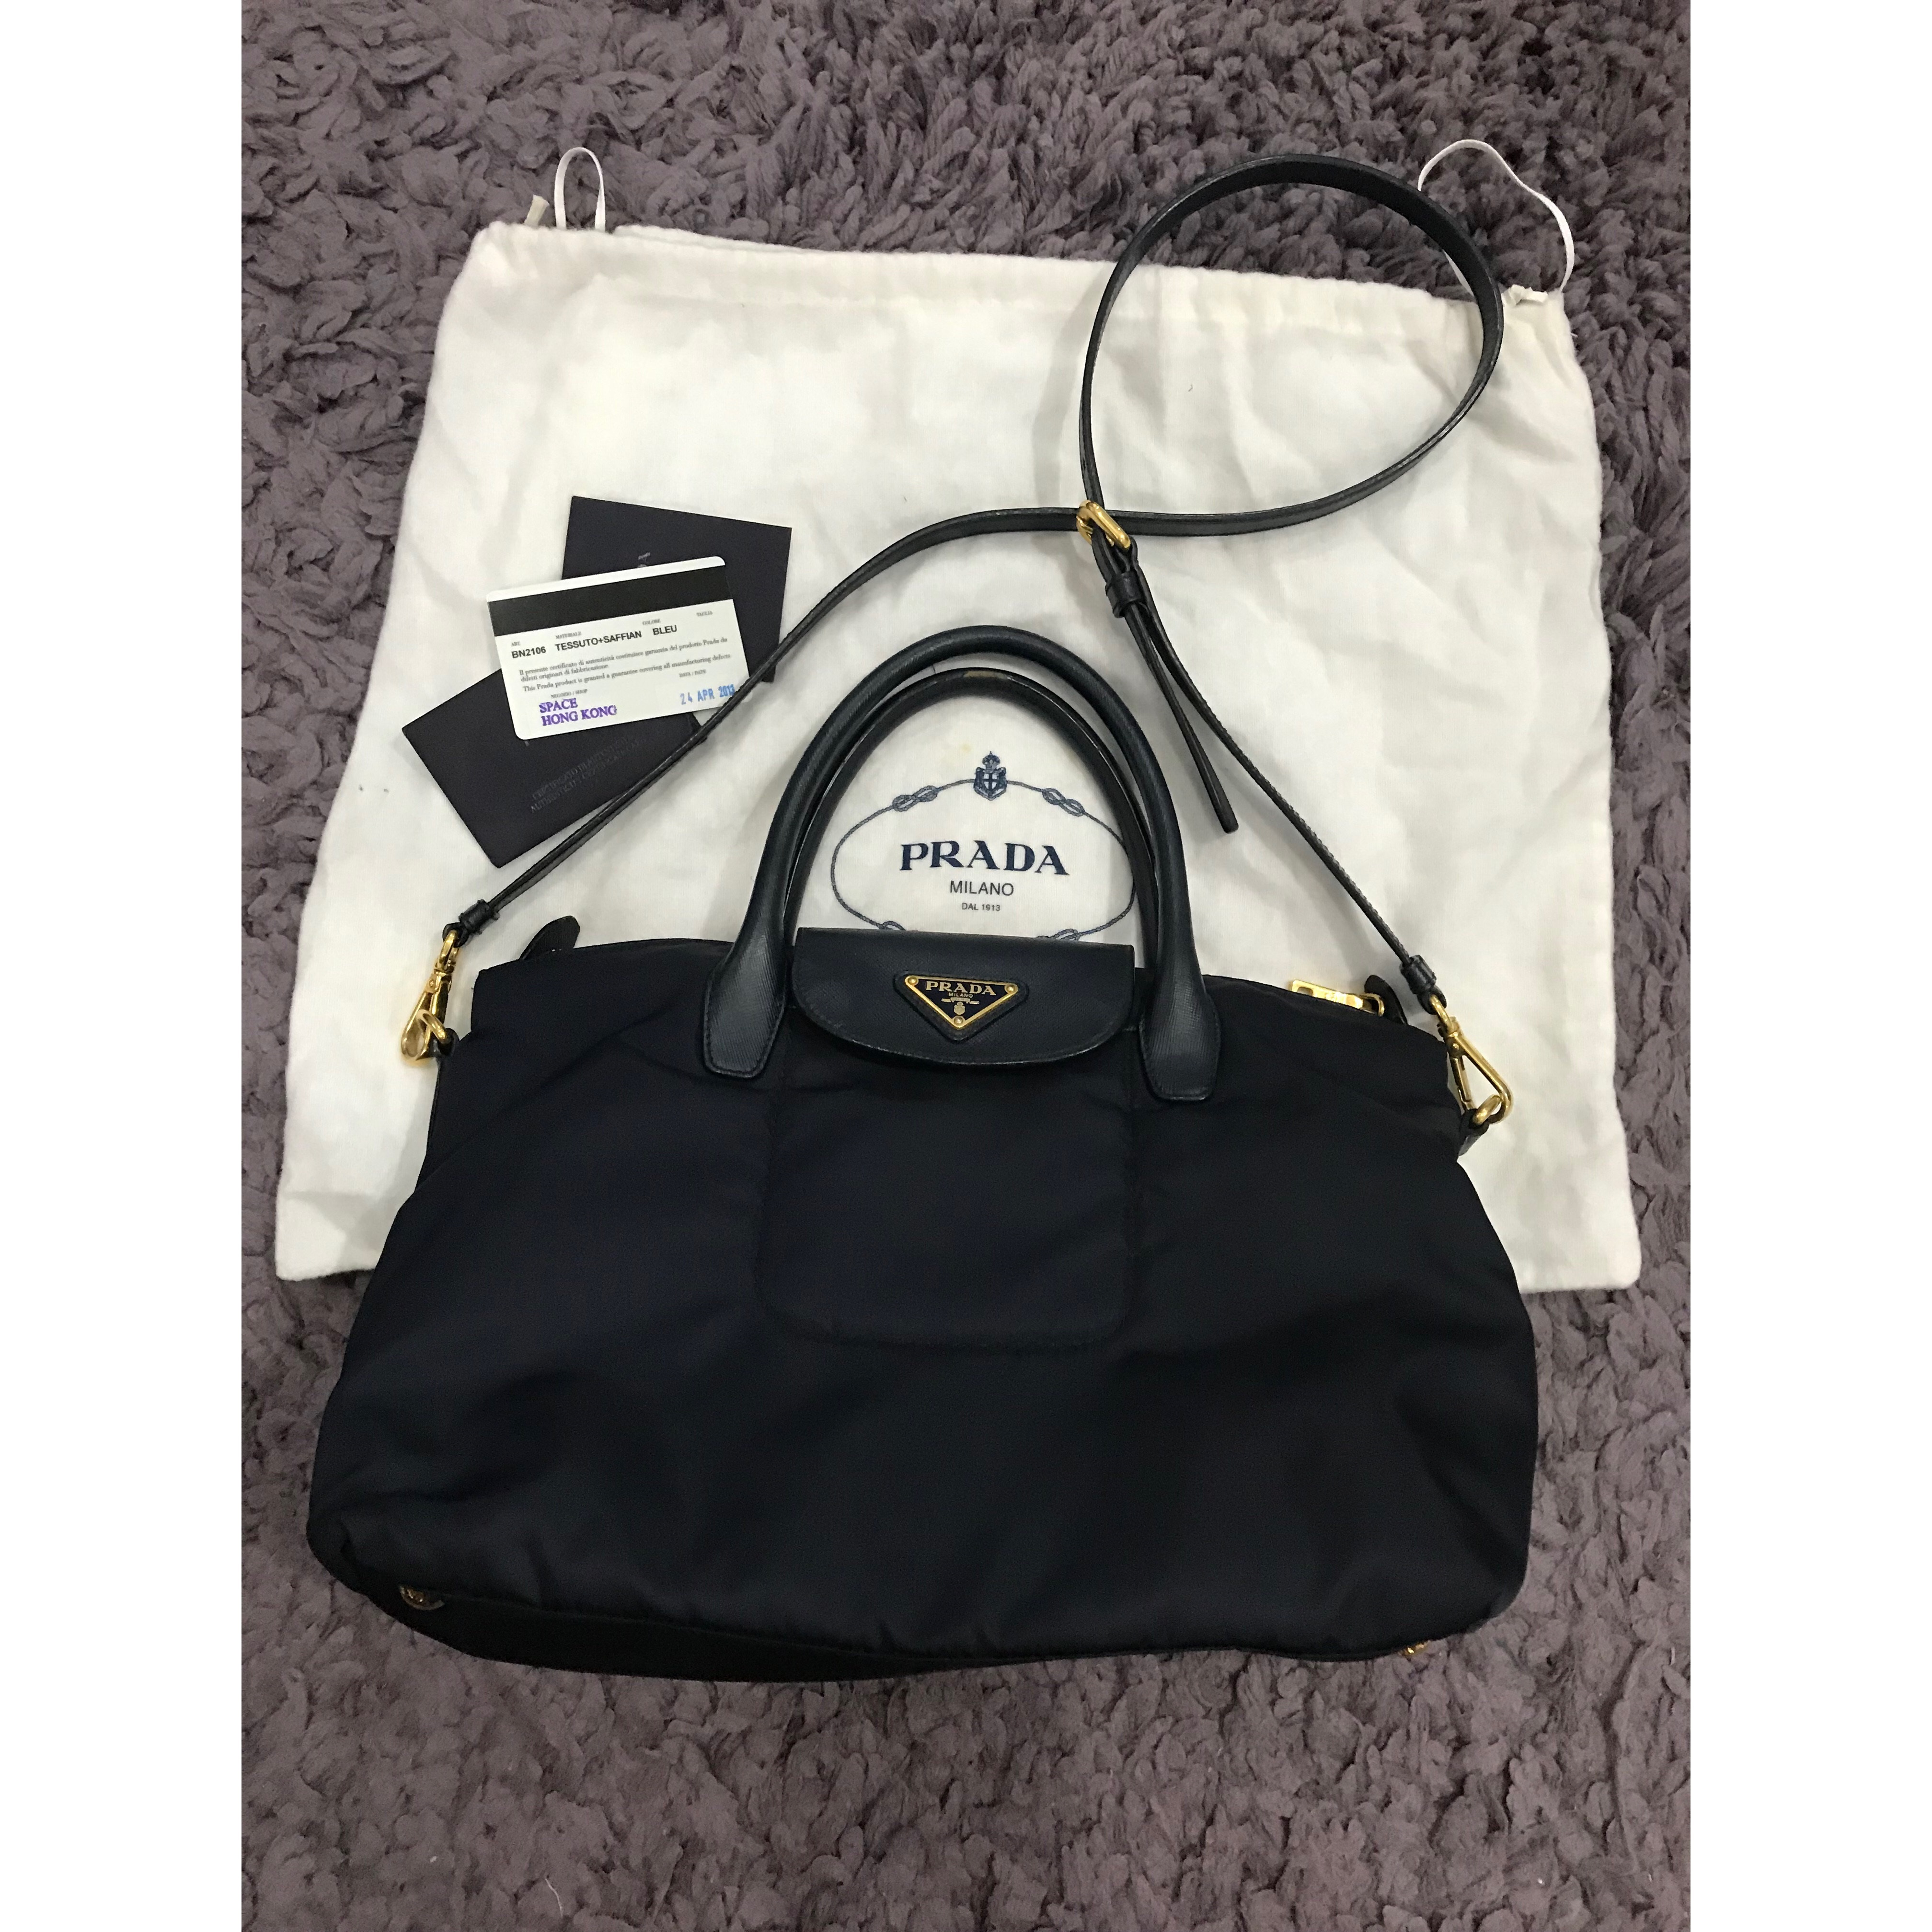 6d710430ba8a Prada flap tessuto safiano leather Color/Material : blue black colour /nylon  navy canvas crossbody bag Condition : 8.5/10 selling very cheap Selling  Price ...